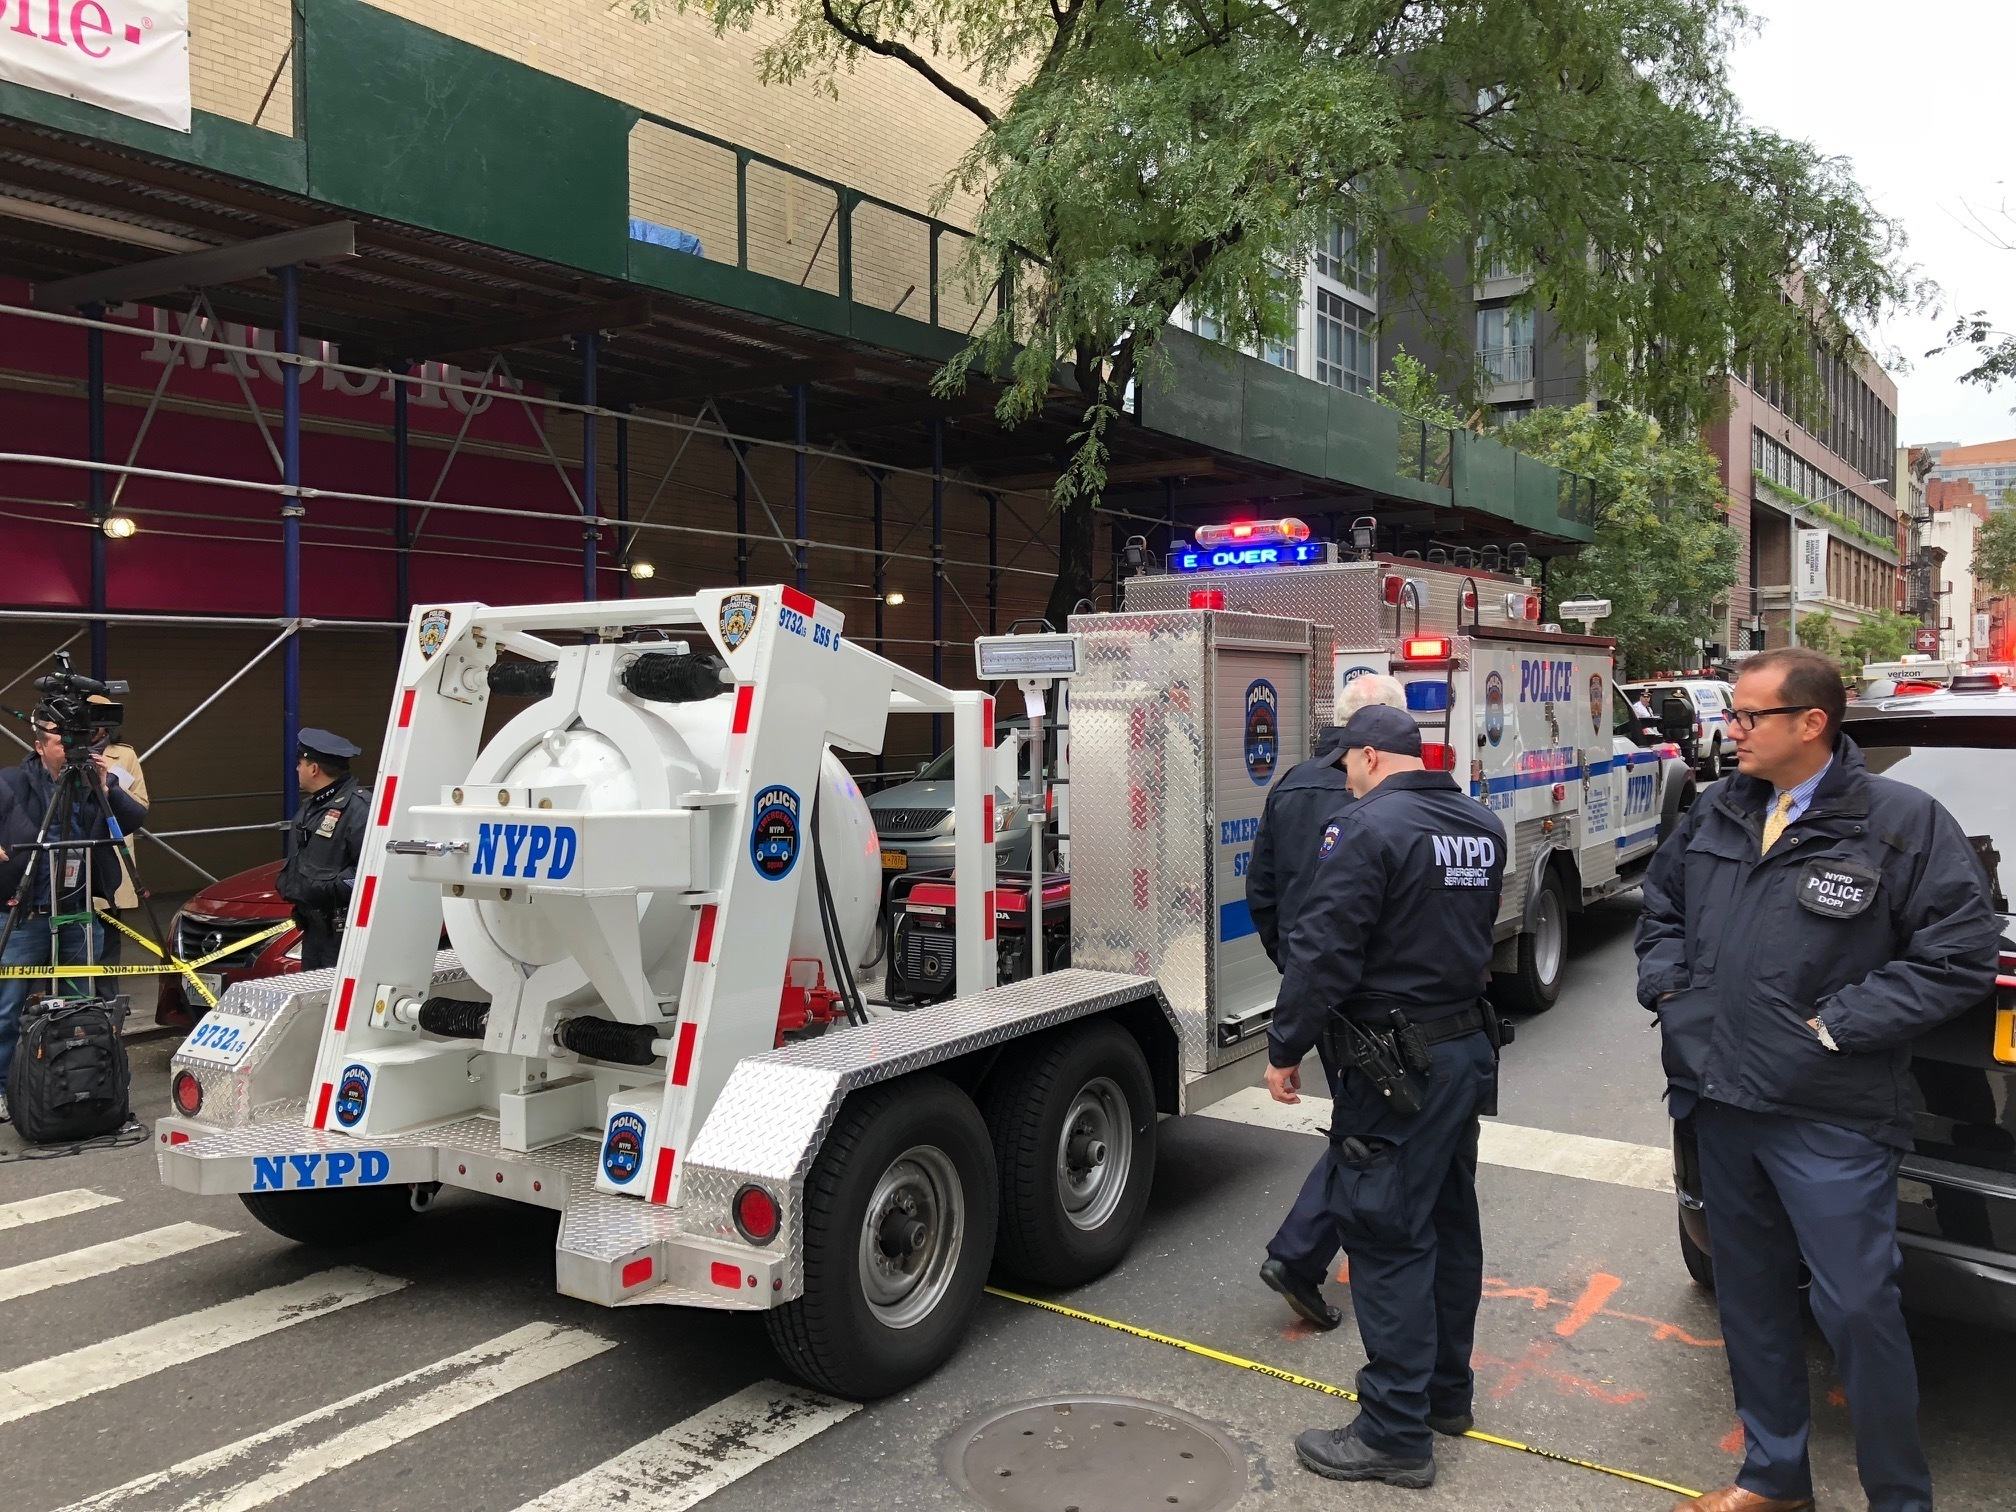 "<div class=""meta image-caption""><div class=""origin-logo origin-image none""><span>none</span></div><span class=""caption-text"">NYPD's Total Containment vessel arrives as law enforcement respond to the scene of a suspicious package at a postal facility, Friday, Oct. 26, 2018 in New York. (Mark Lennihan/AP Photo)</span></div>"